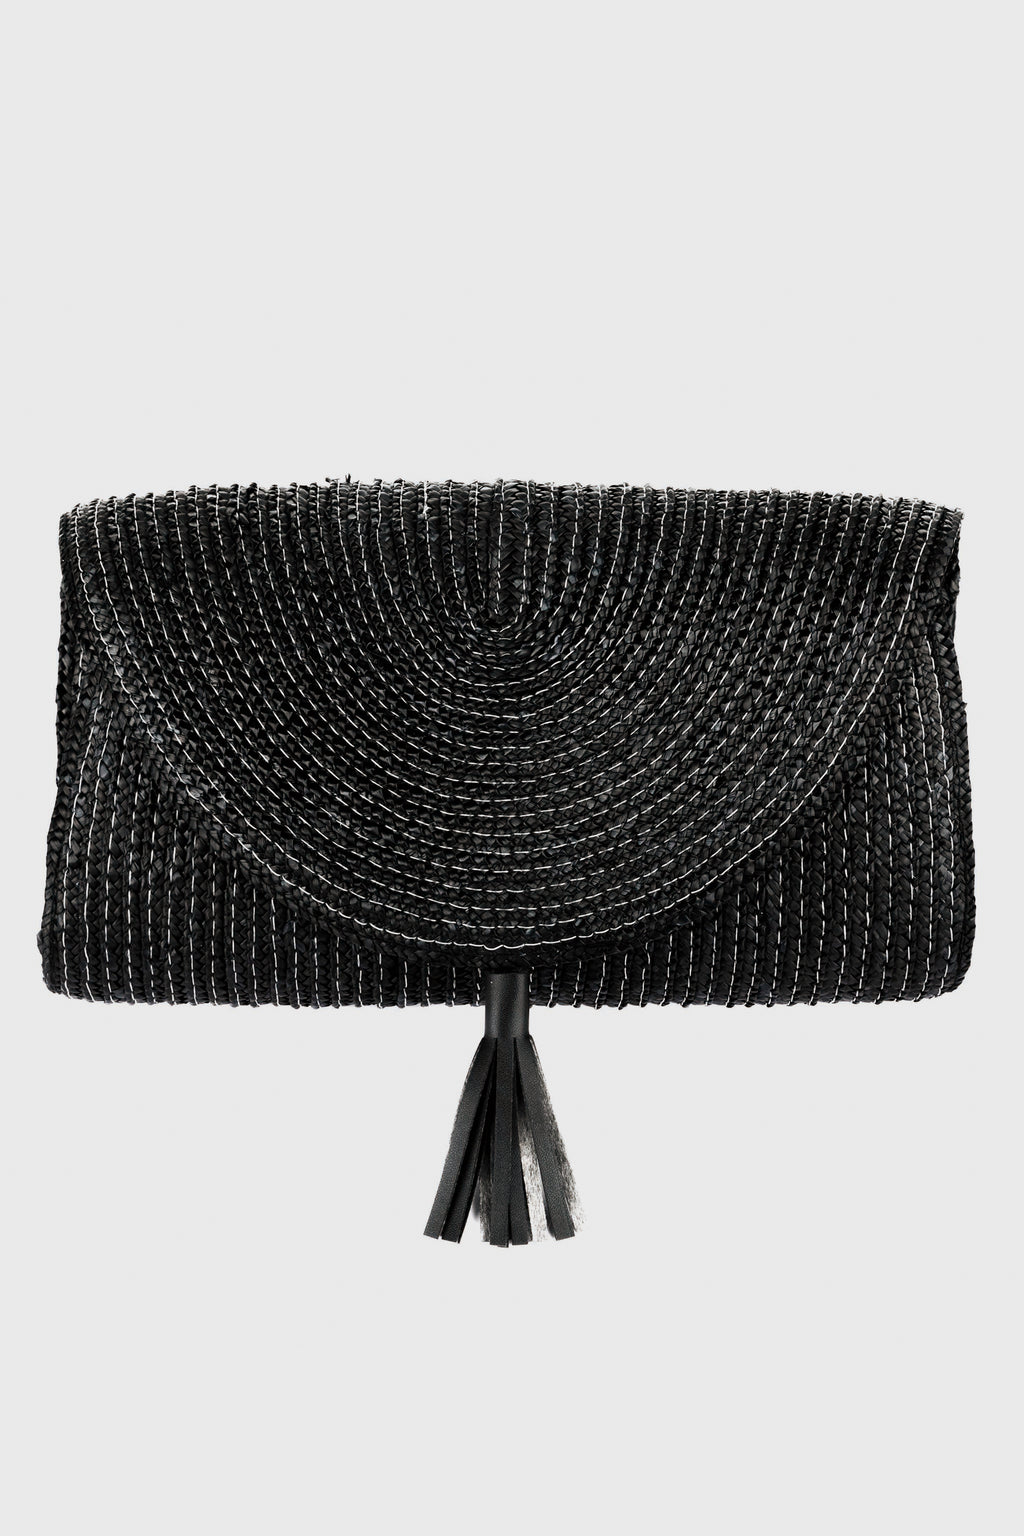 Clutch With Snap Closure & Leather Tassel Detail (BSB3746)-CLUTCH-BaySky